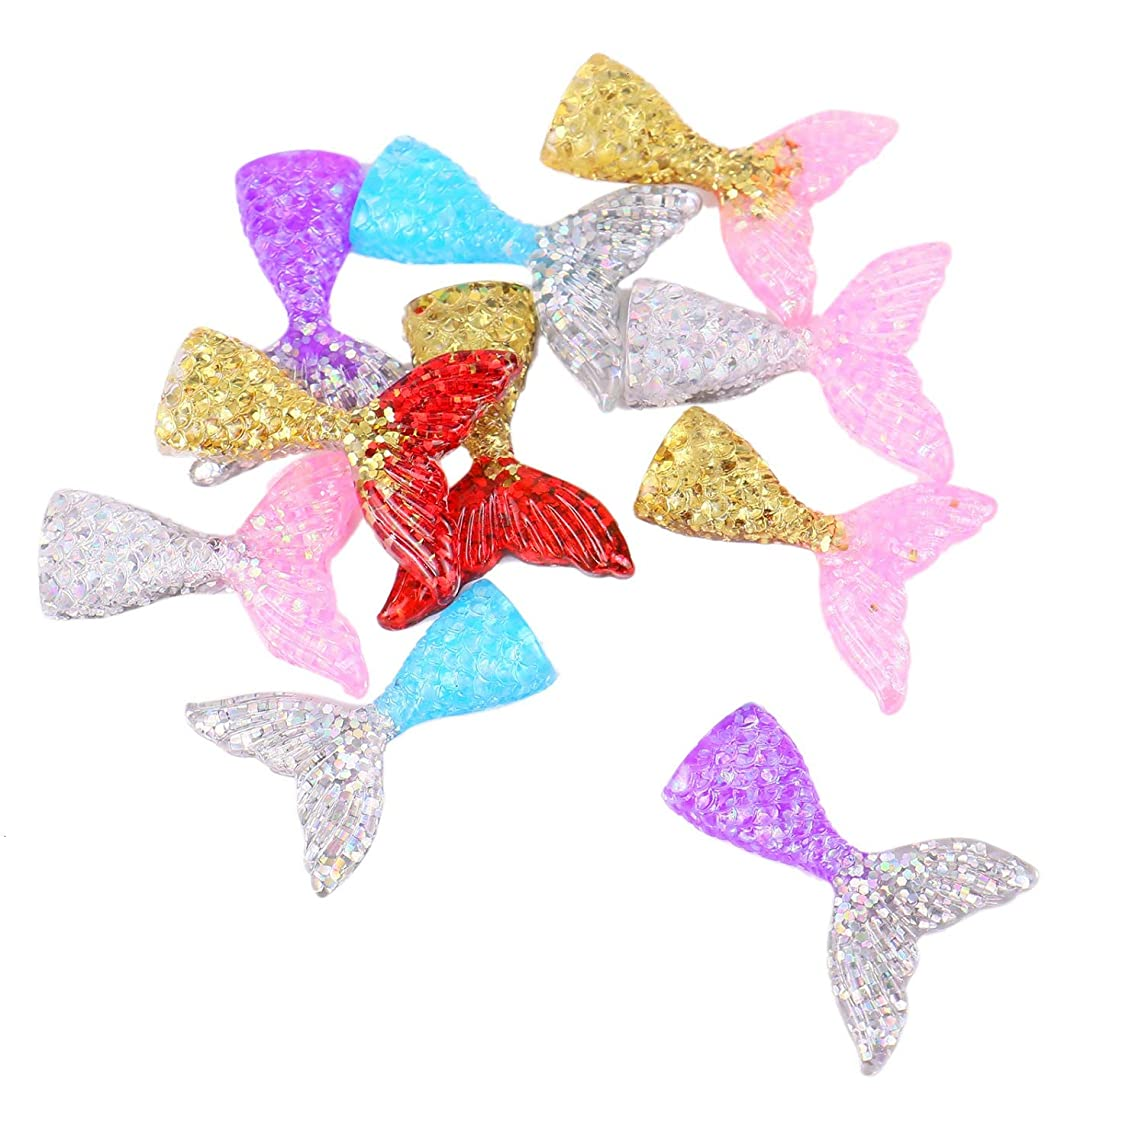 Monrocco 50Pcs Mixed Color Silme Charms,Resin Flatback Mermaid Tail Slime Charms for Ornament Scrapbook DIY Crafts